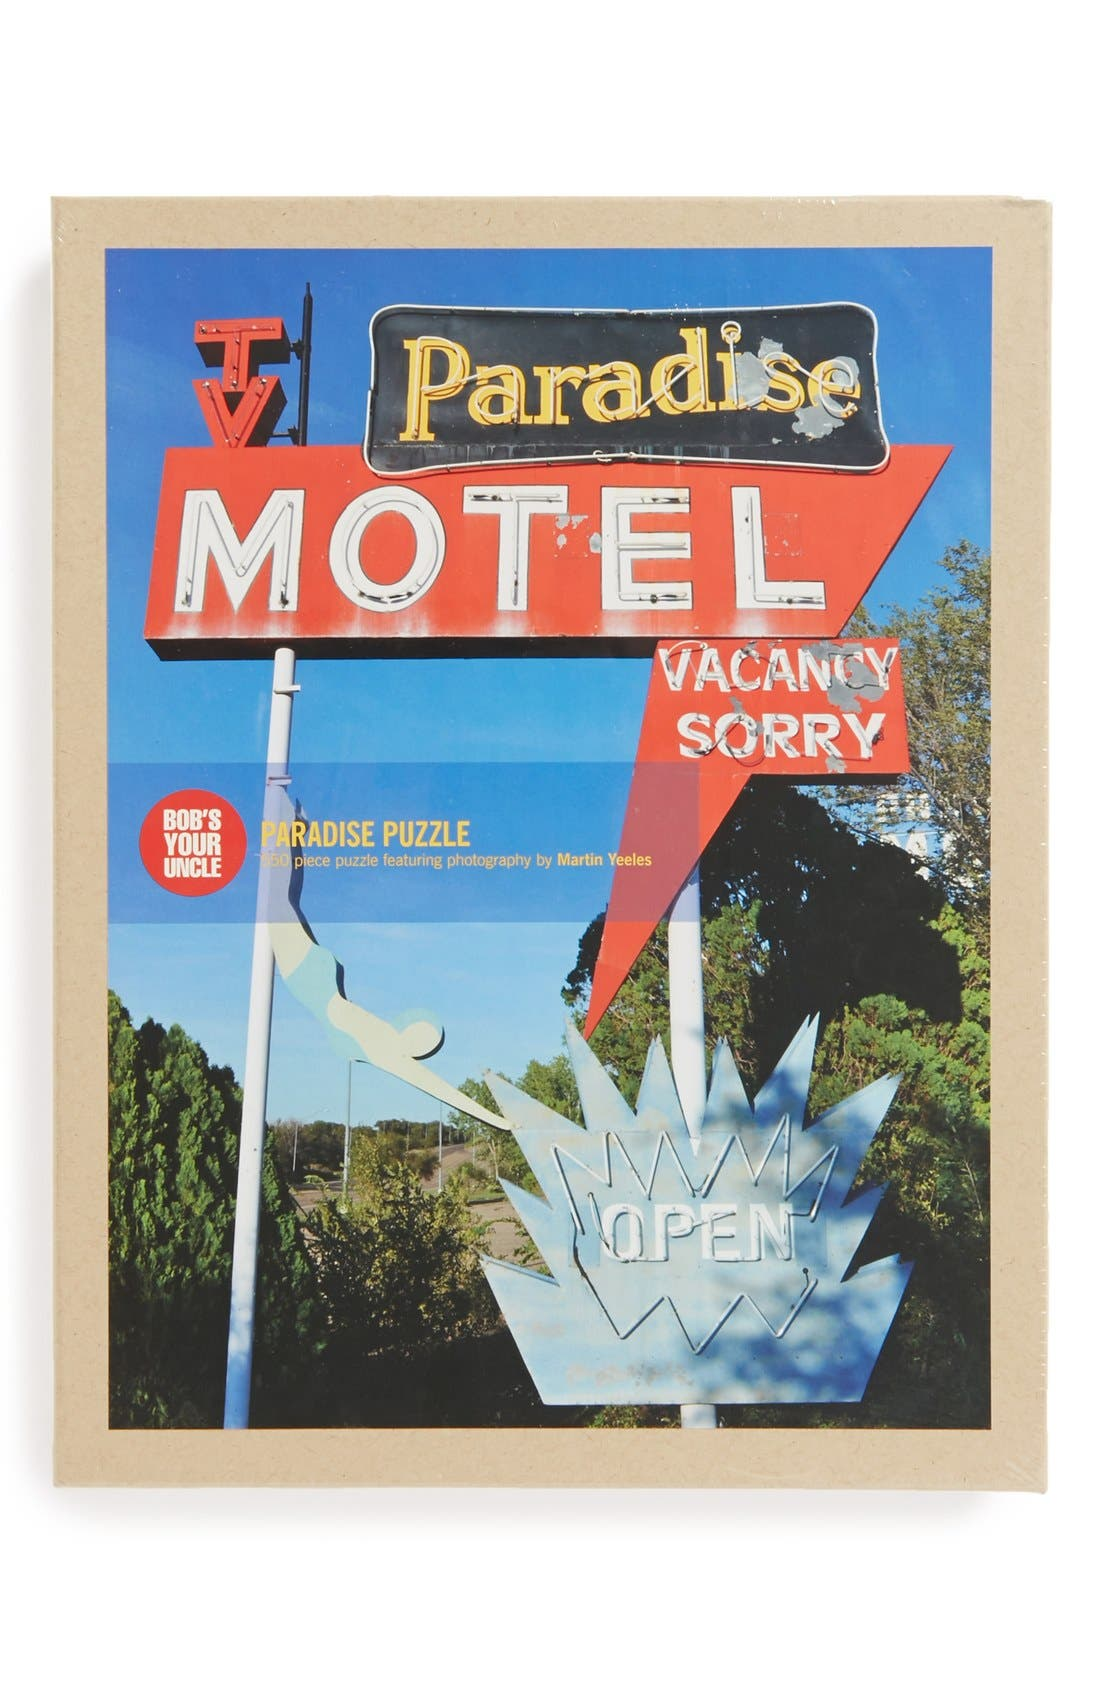 Alternate Image 1 Selected - Bob's Your Uncle 'Paradise Motel' Puzzle